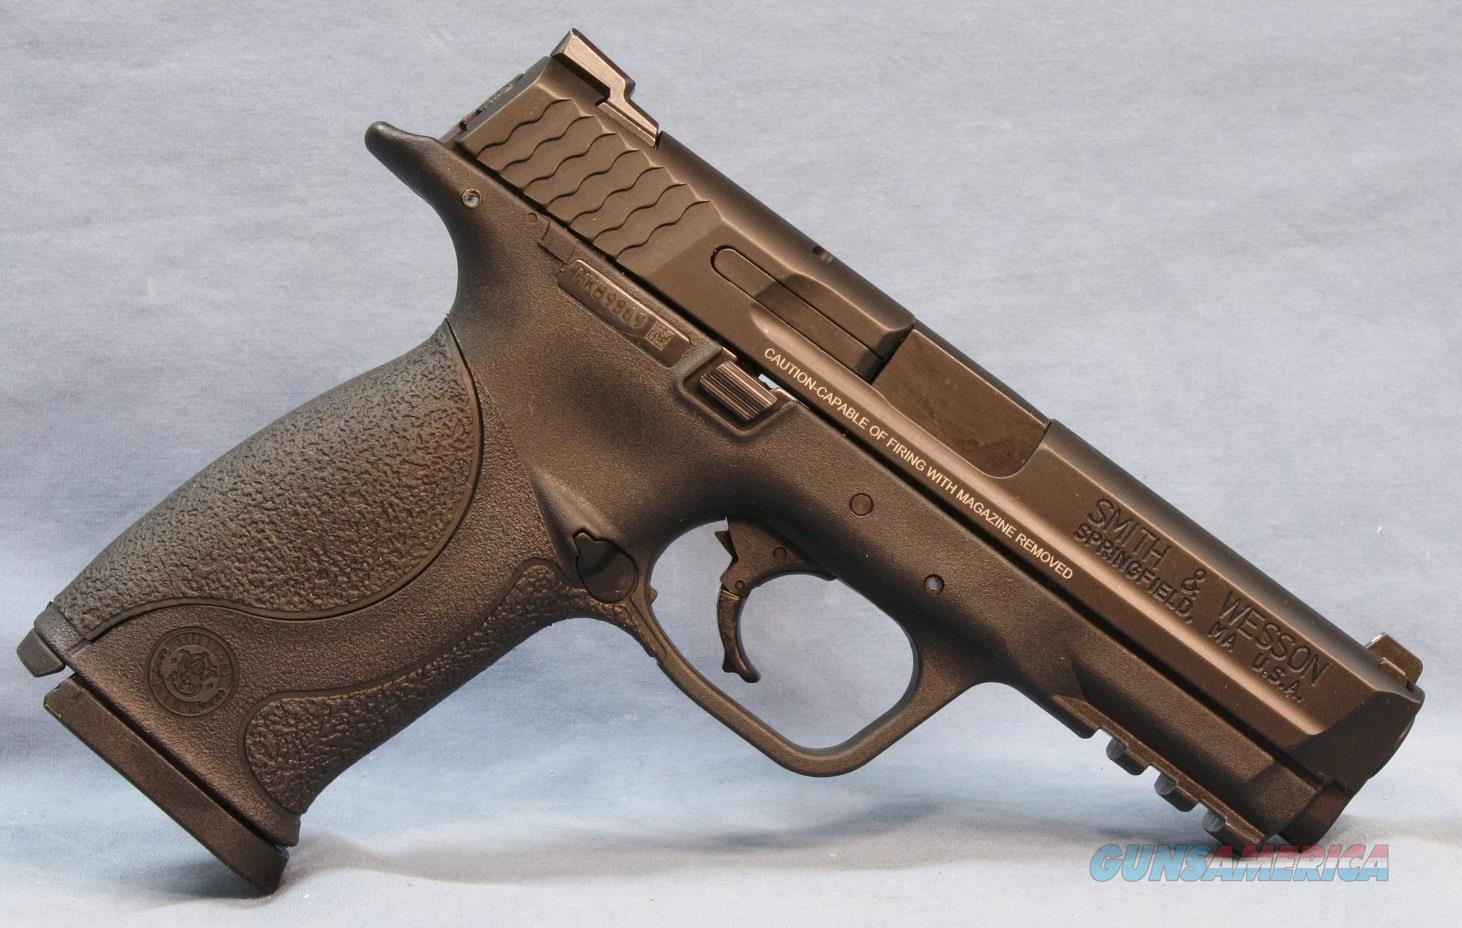 Smith & Wesson M&P 9 Double Action Semi-Automatic Pistol 9mm Luger   Guns > Pistols > Smith & Wesson Pistols - Autos > Polymer Frame